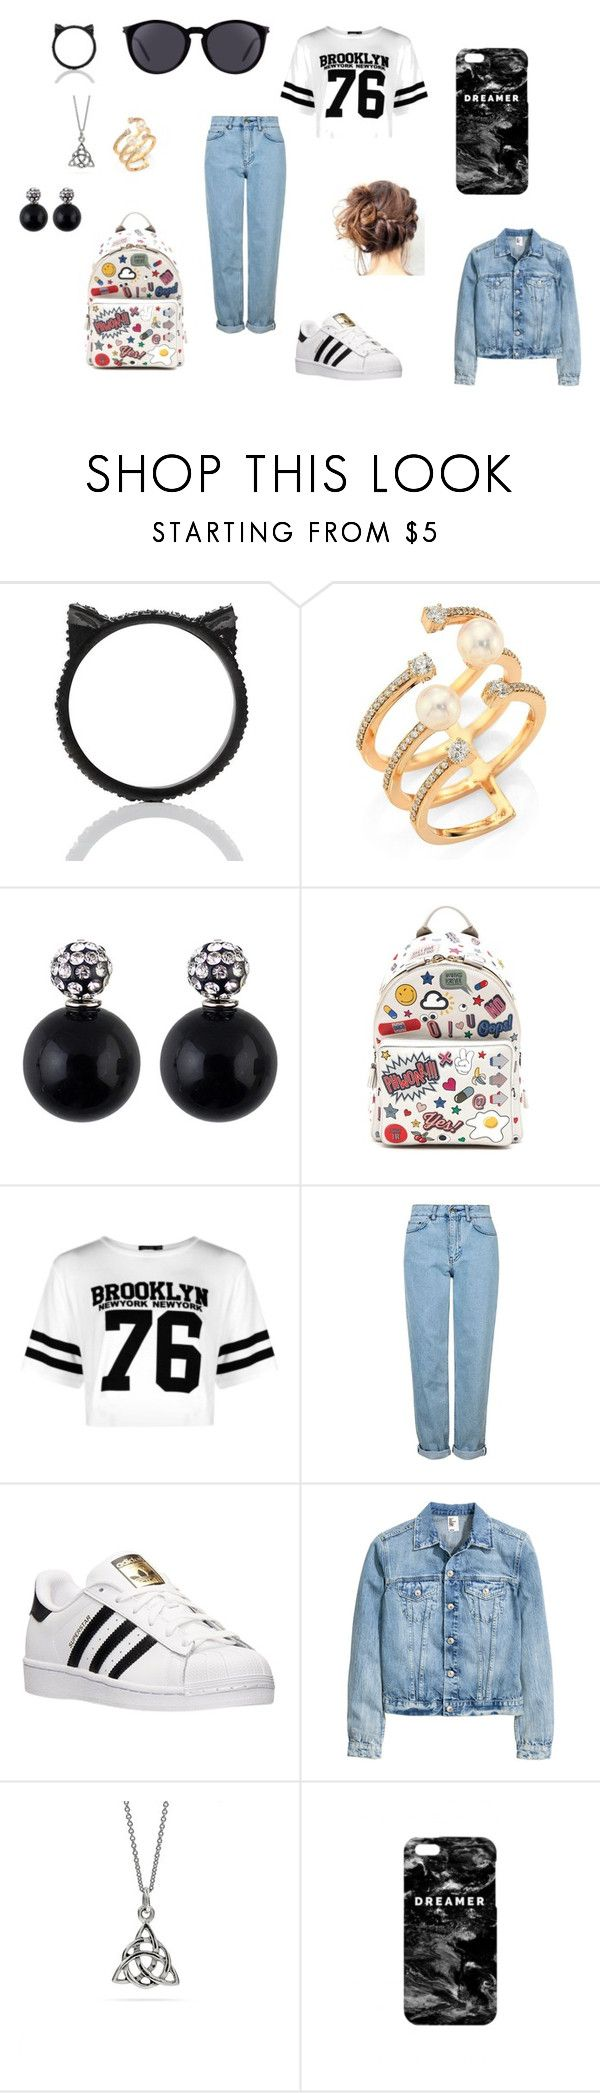 """""""The world is wrong"""" by withered-ros ❤ liked on Polyvore featuring Kate Spade, Hueb, Anya Hindmarch, Boohoo, Topshop, adidas, Mr. Gugu & Miss Go and Yves Saint Laurent"""